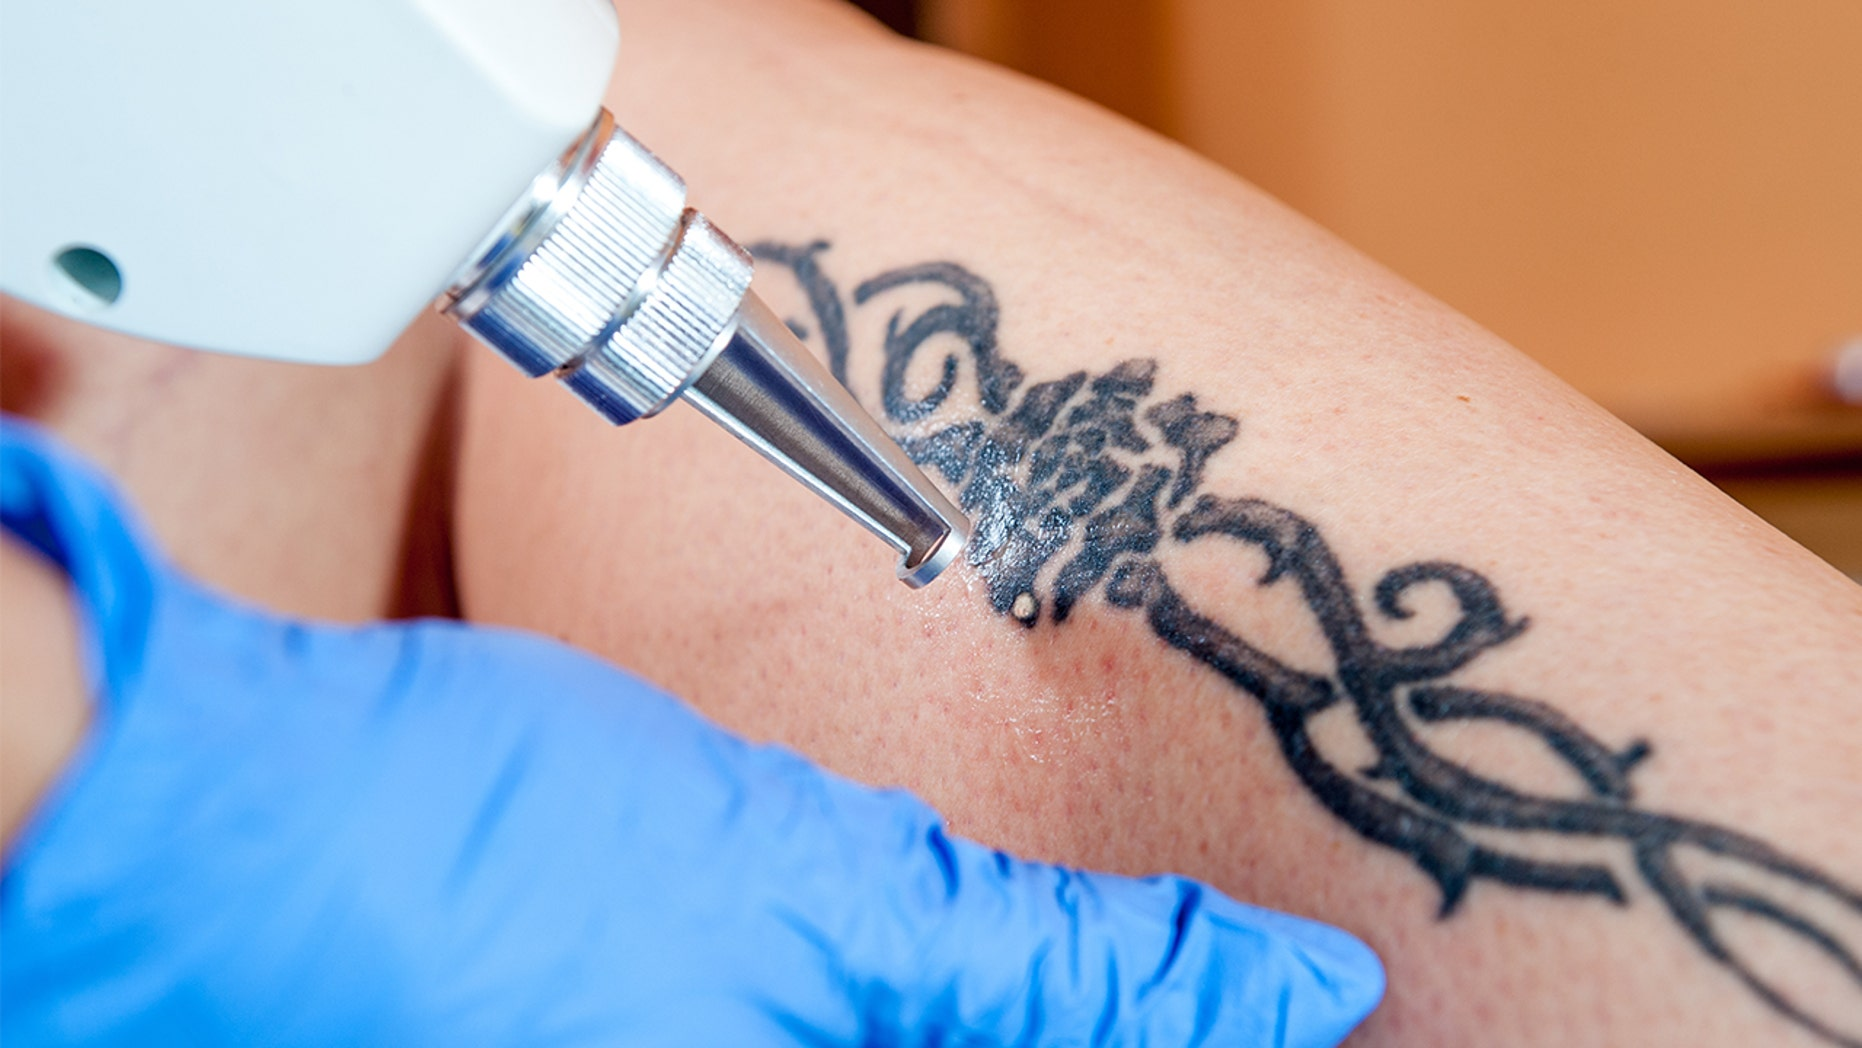 A free tattoo removal program is offering its services to young survivors of sex trafficking.